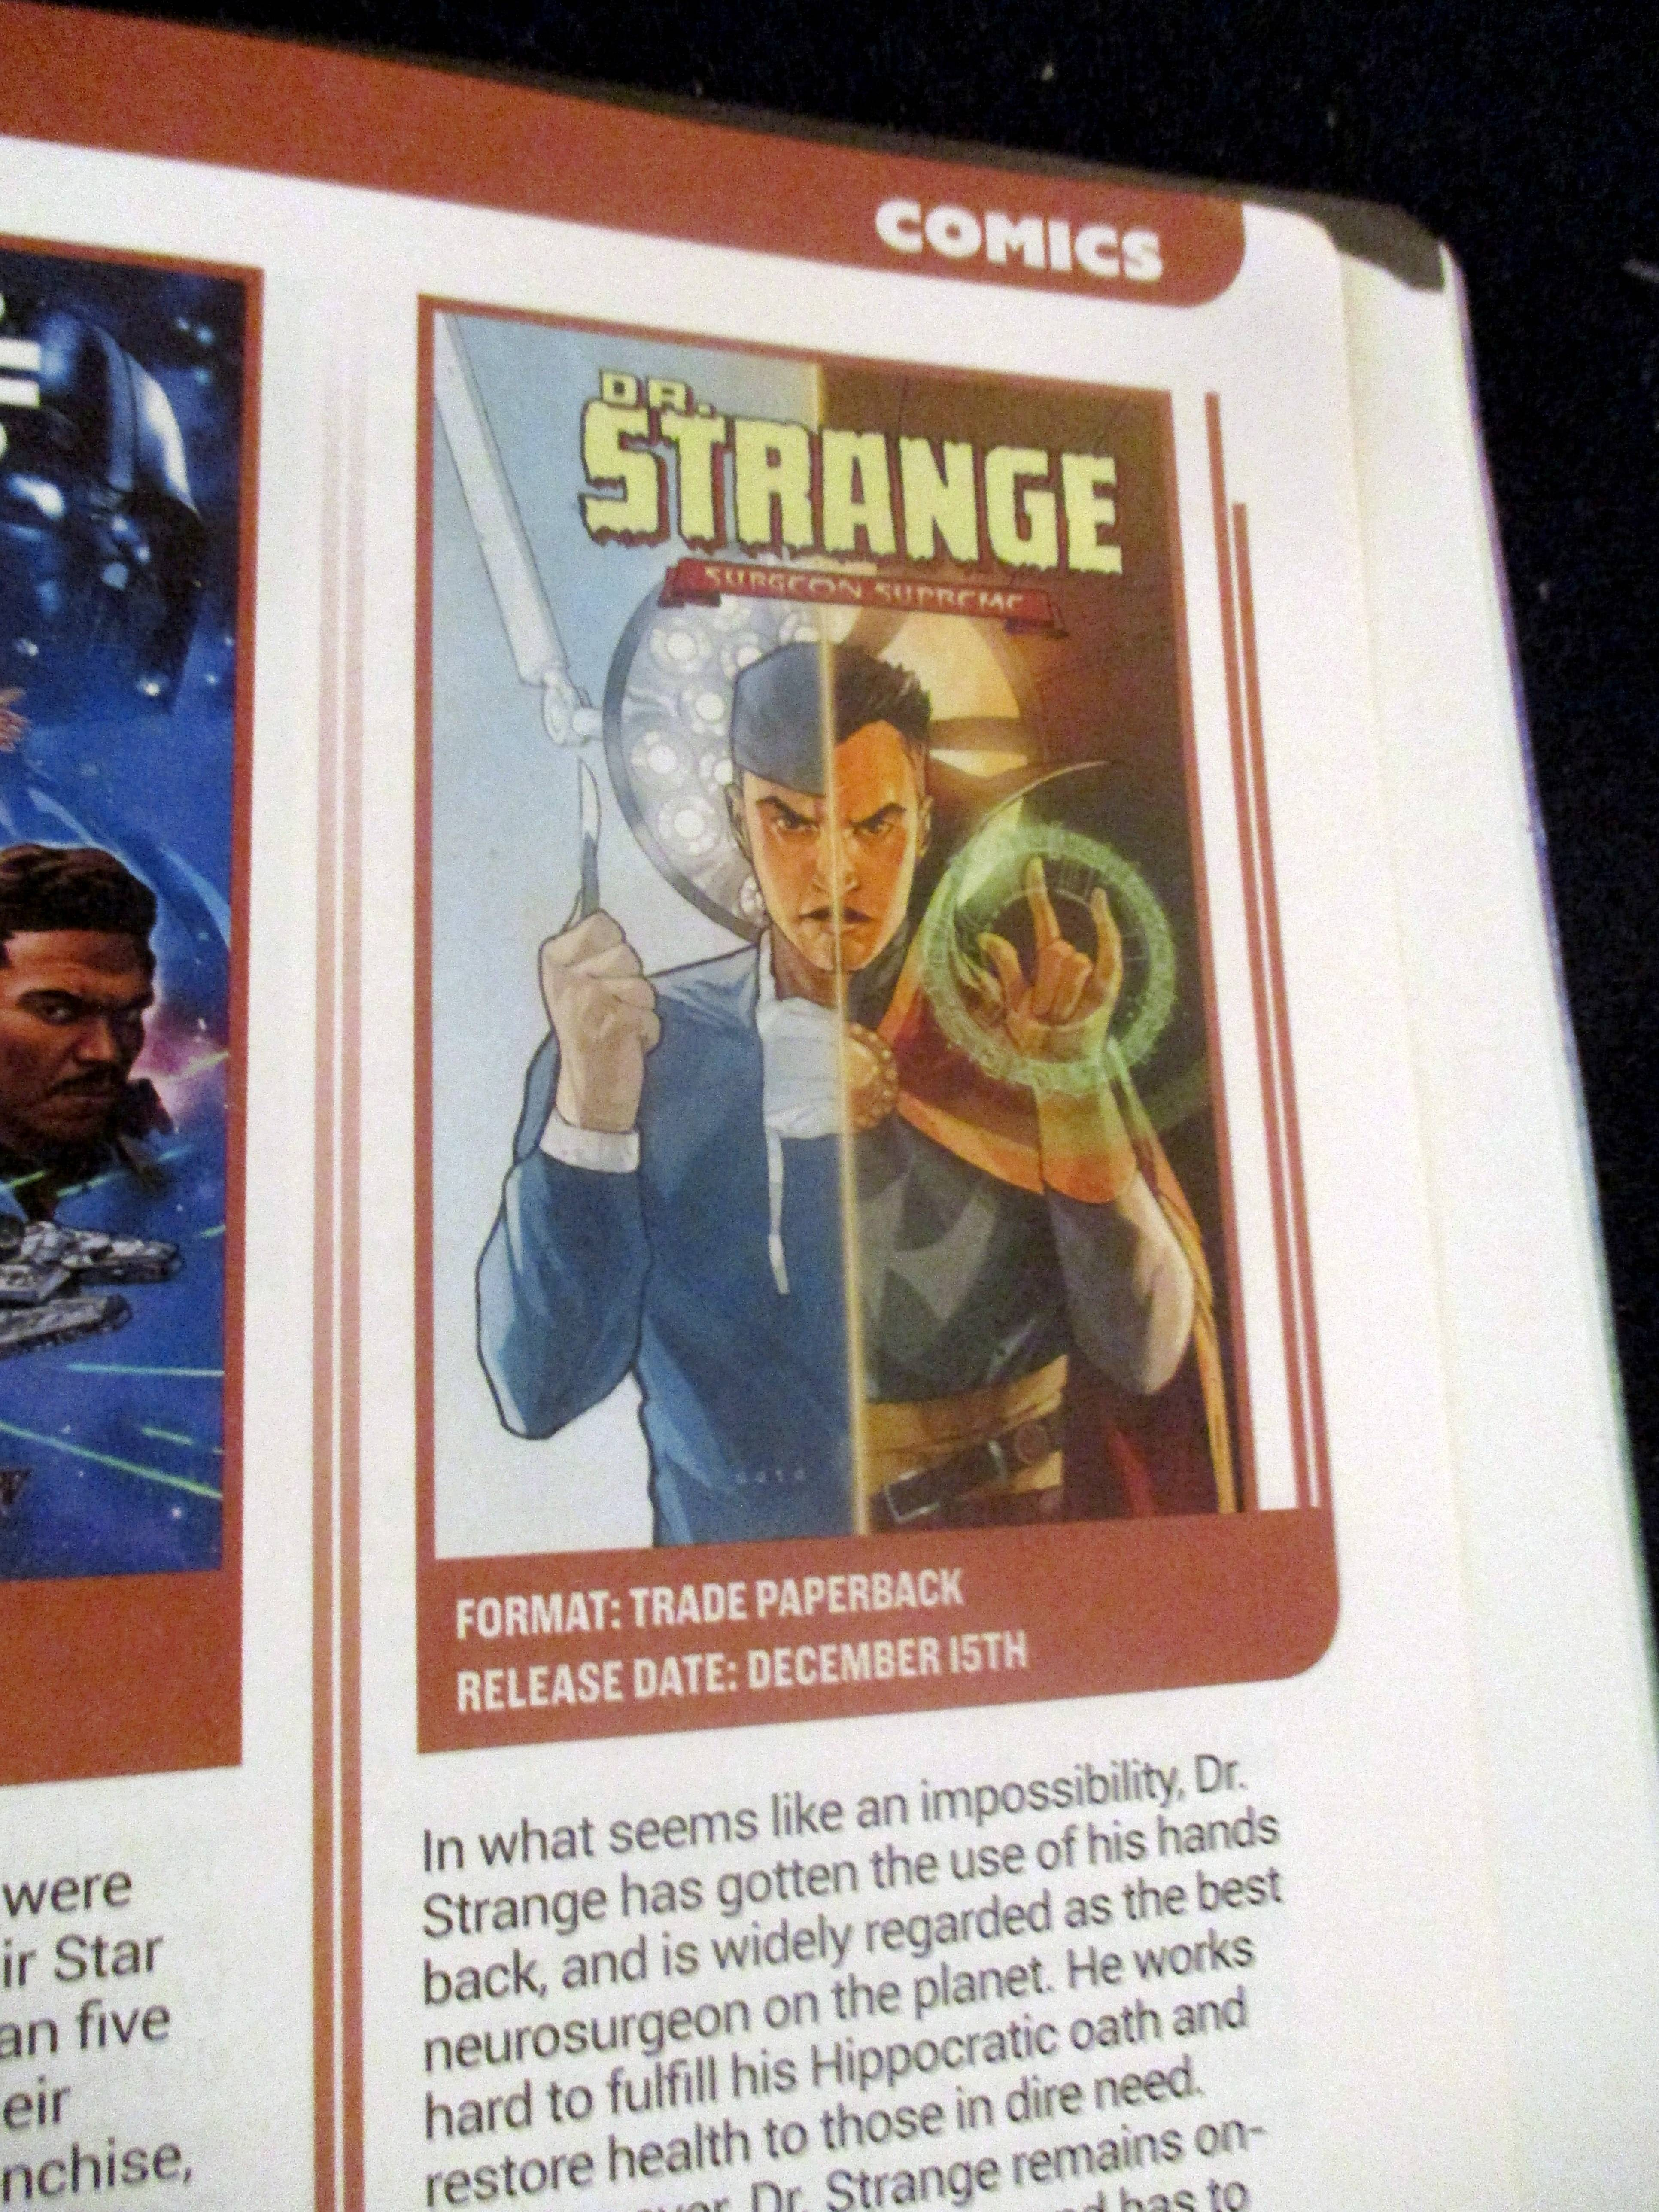 Image of Front Cover of Trade Paperback of Doctor Strange: Surgeon Supreme in Review of Doctor Strange: Surgeon Supreme in Starburst Magazine #475: The Mandalorian Collectors¿ Edition at The Wombatorium 2.0: A Capital Idea